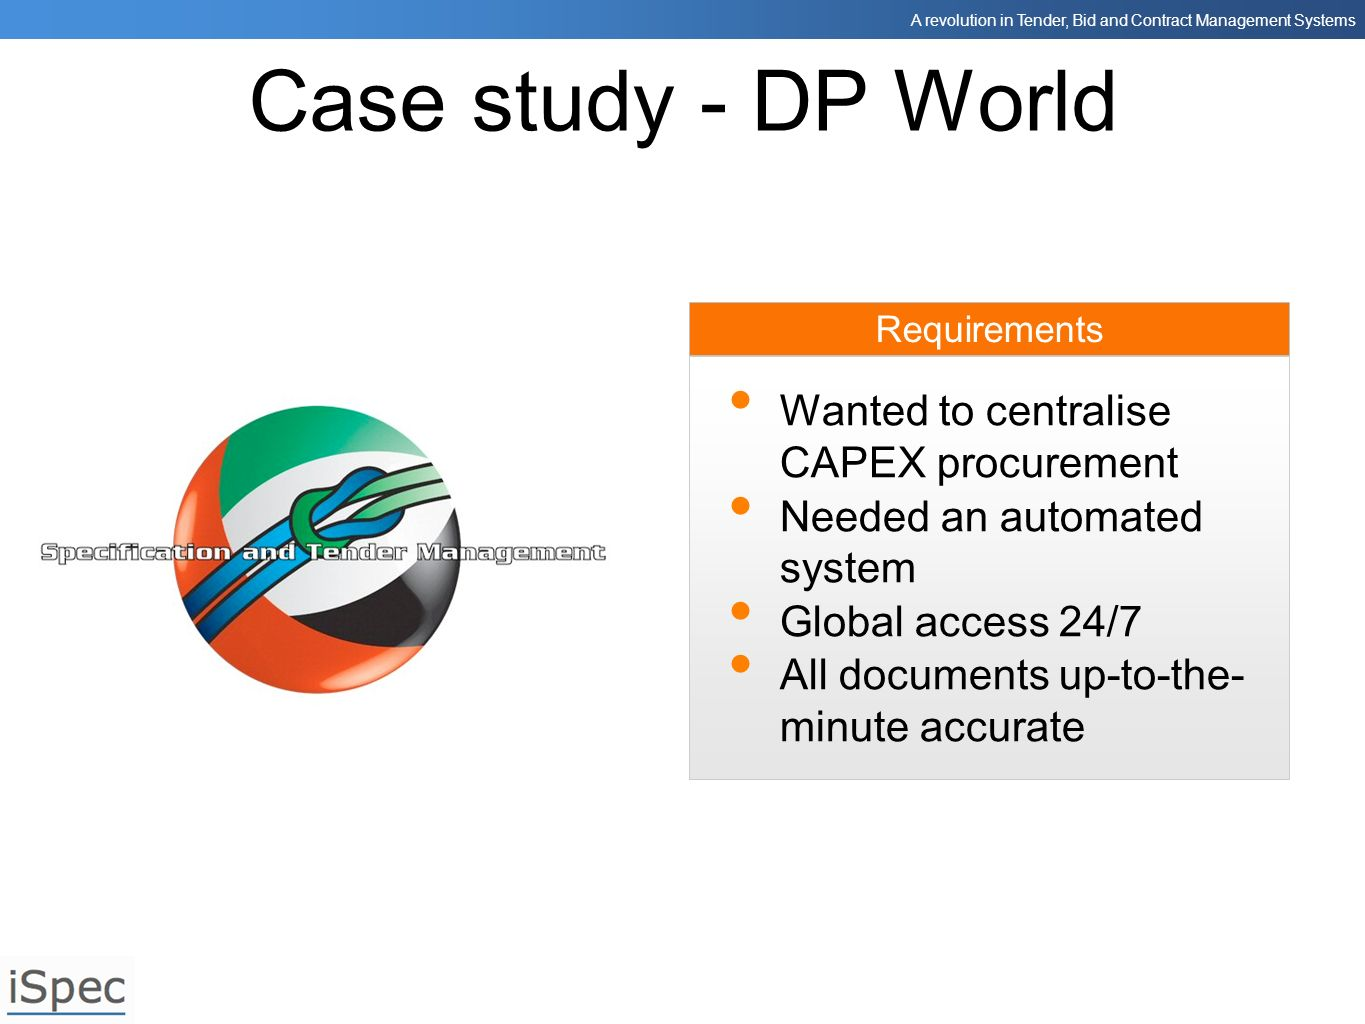 Case study - DP World Wanted to centralise CAPEX procurement